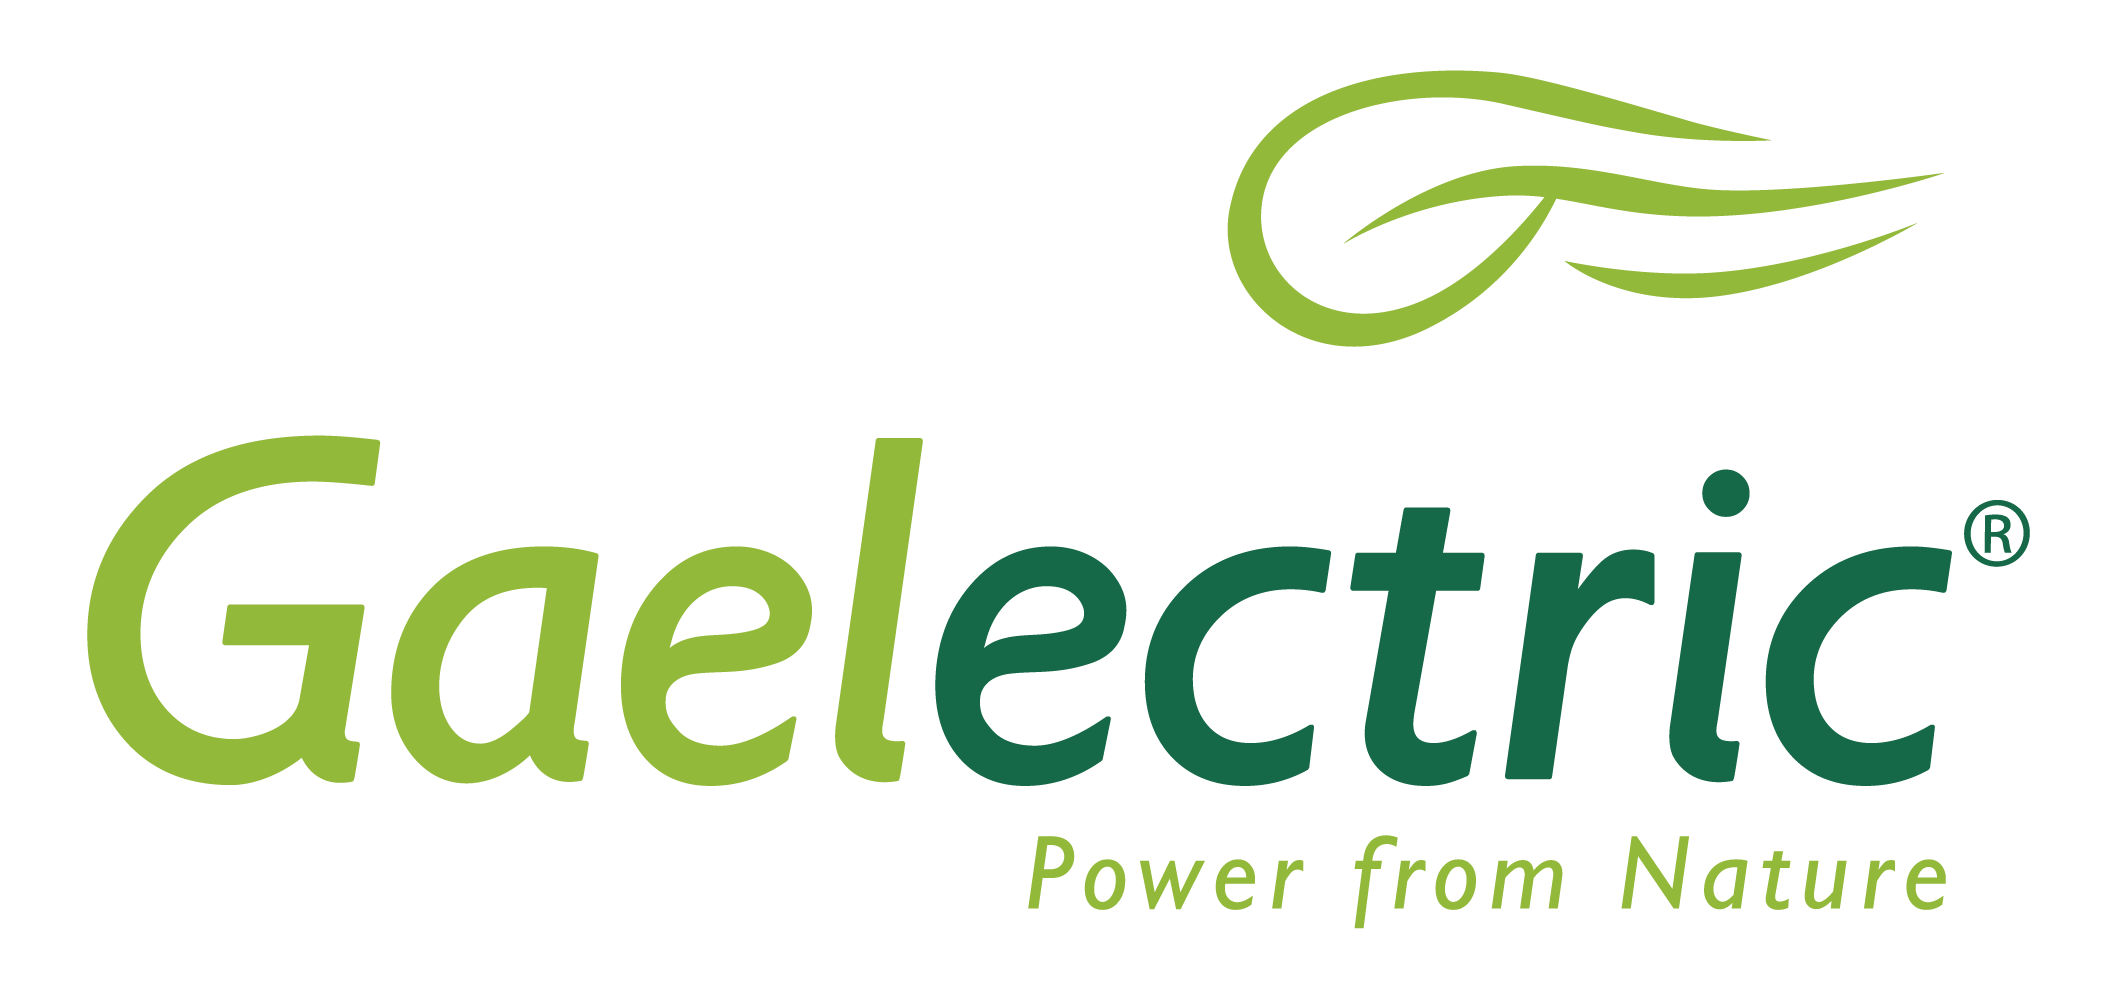 Gaelectric new